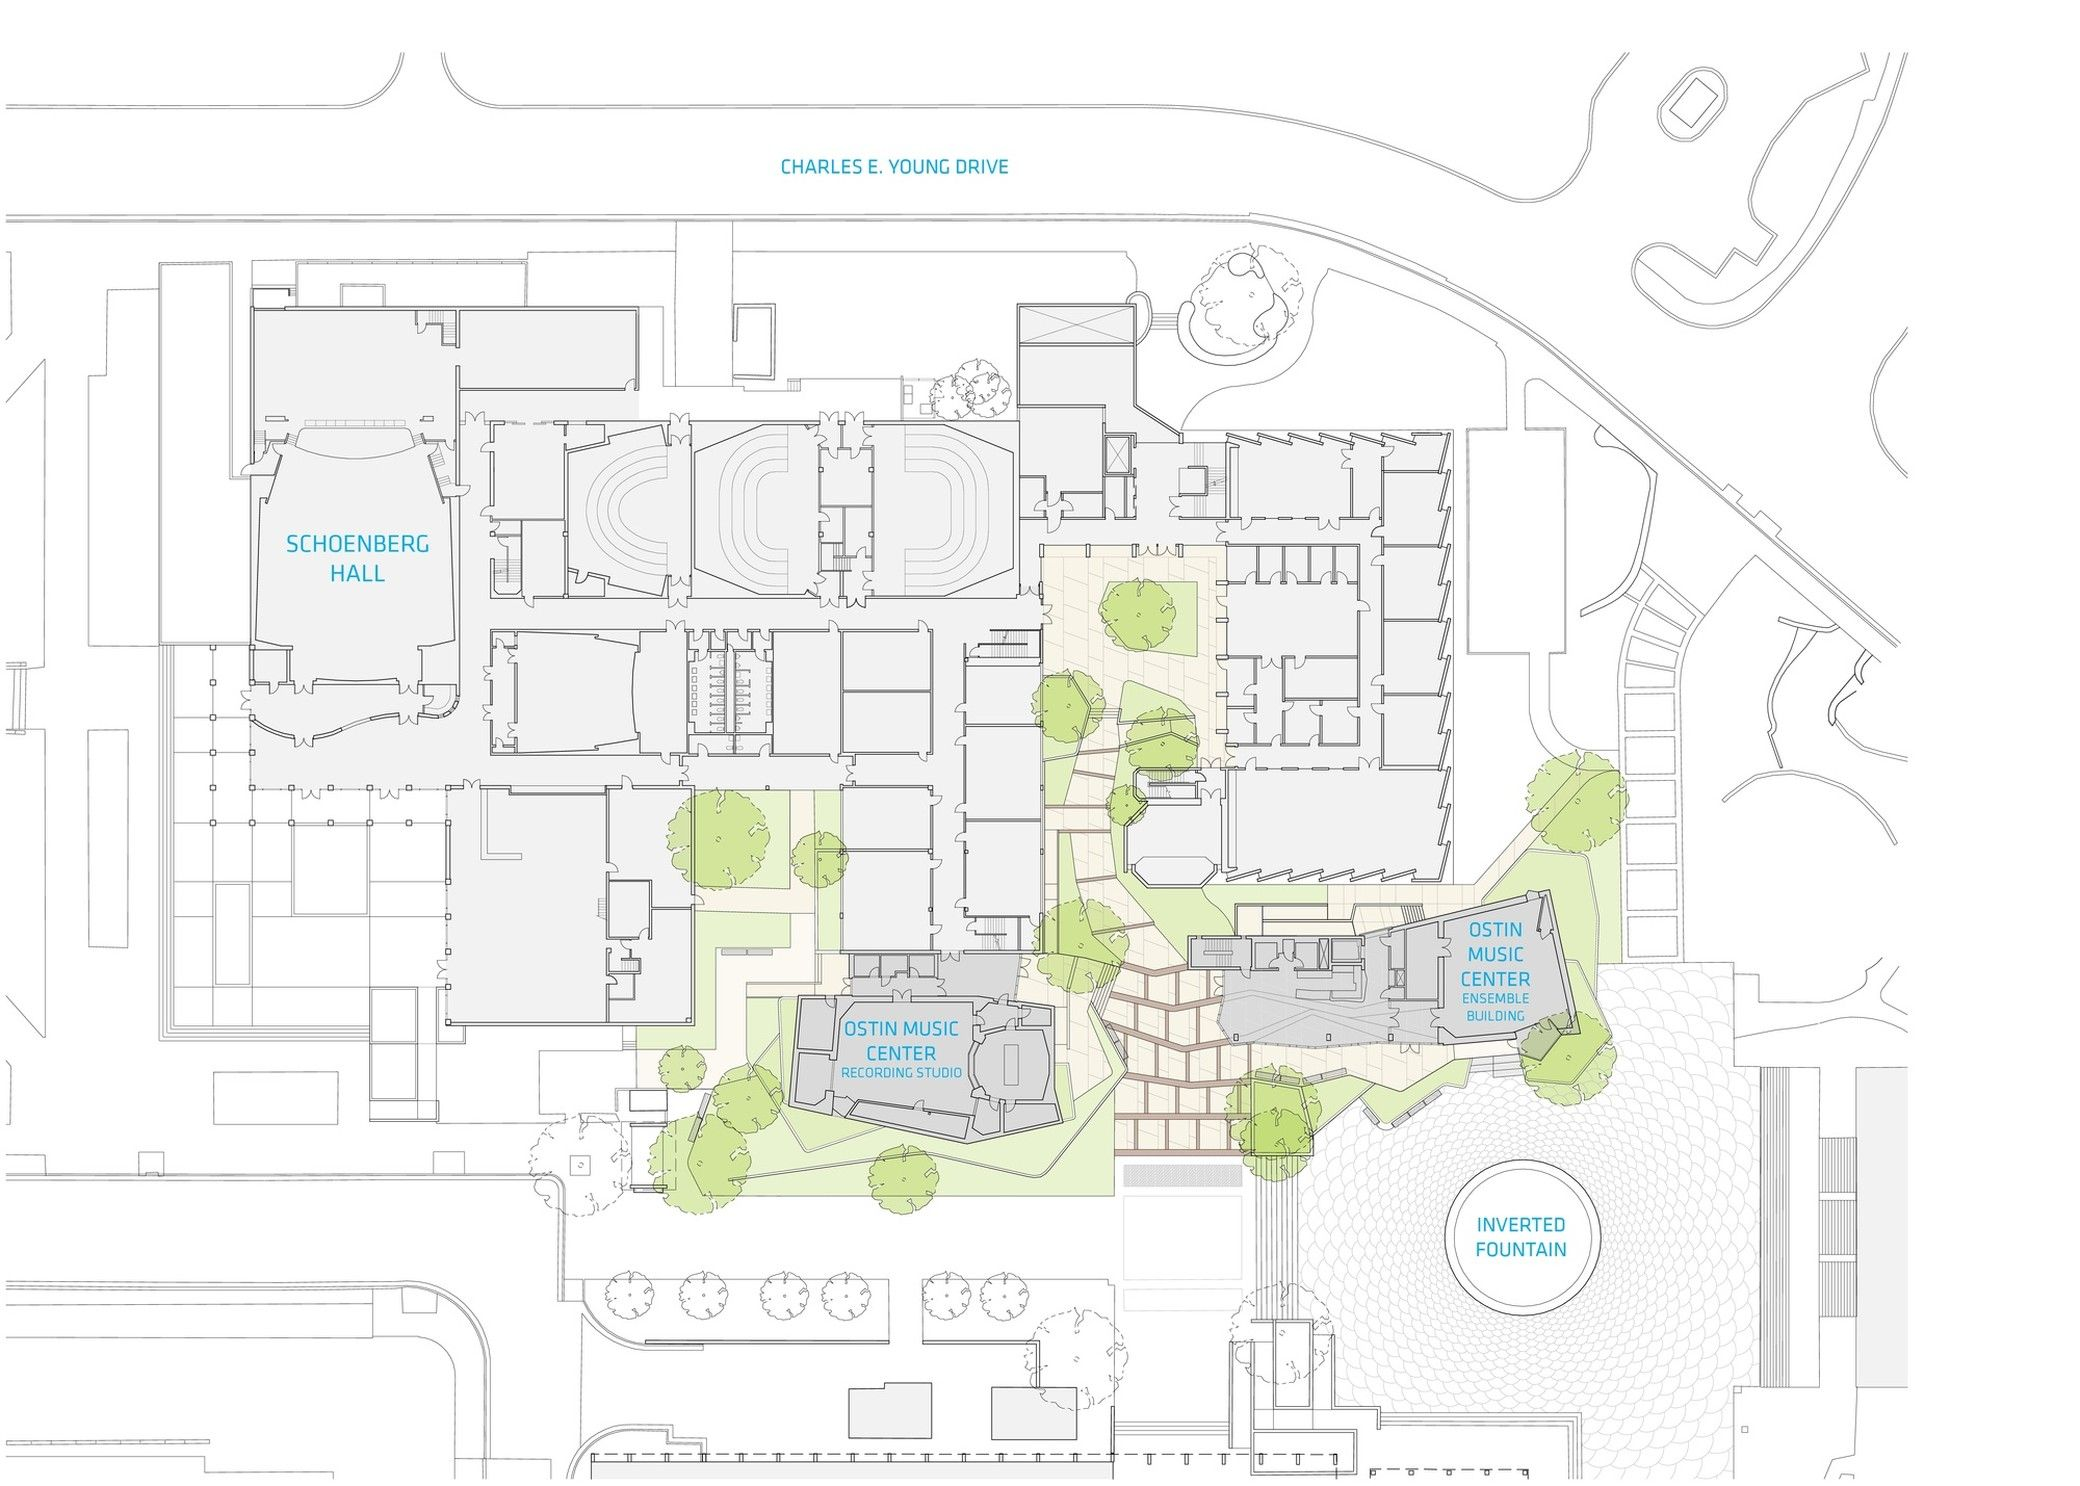 The Evelyn And Mo Ostin Music Center Kevin Daly Architects Arch2o Com Architect Music Centers Site Plan